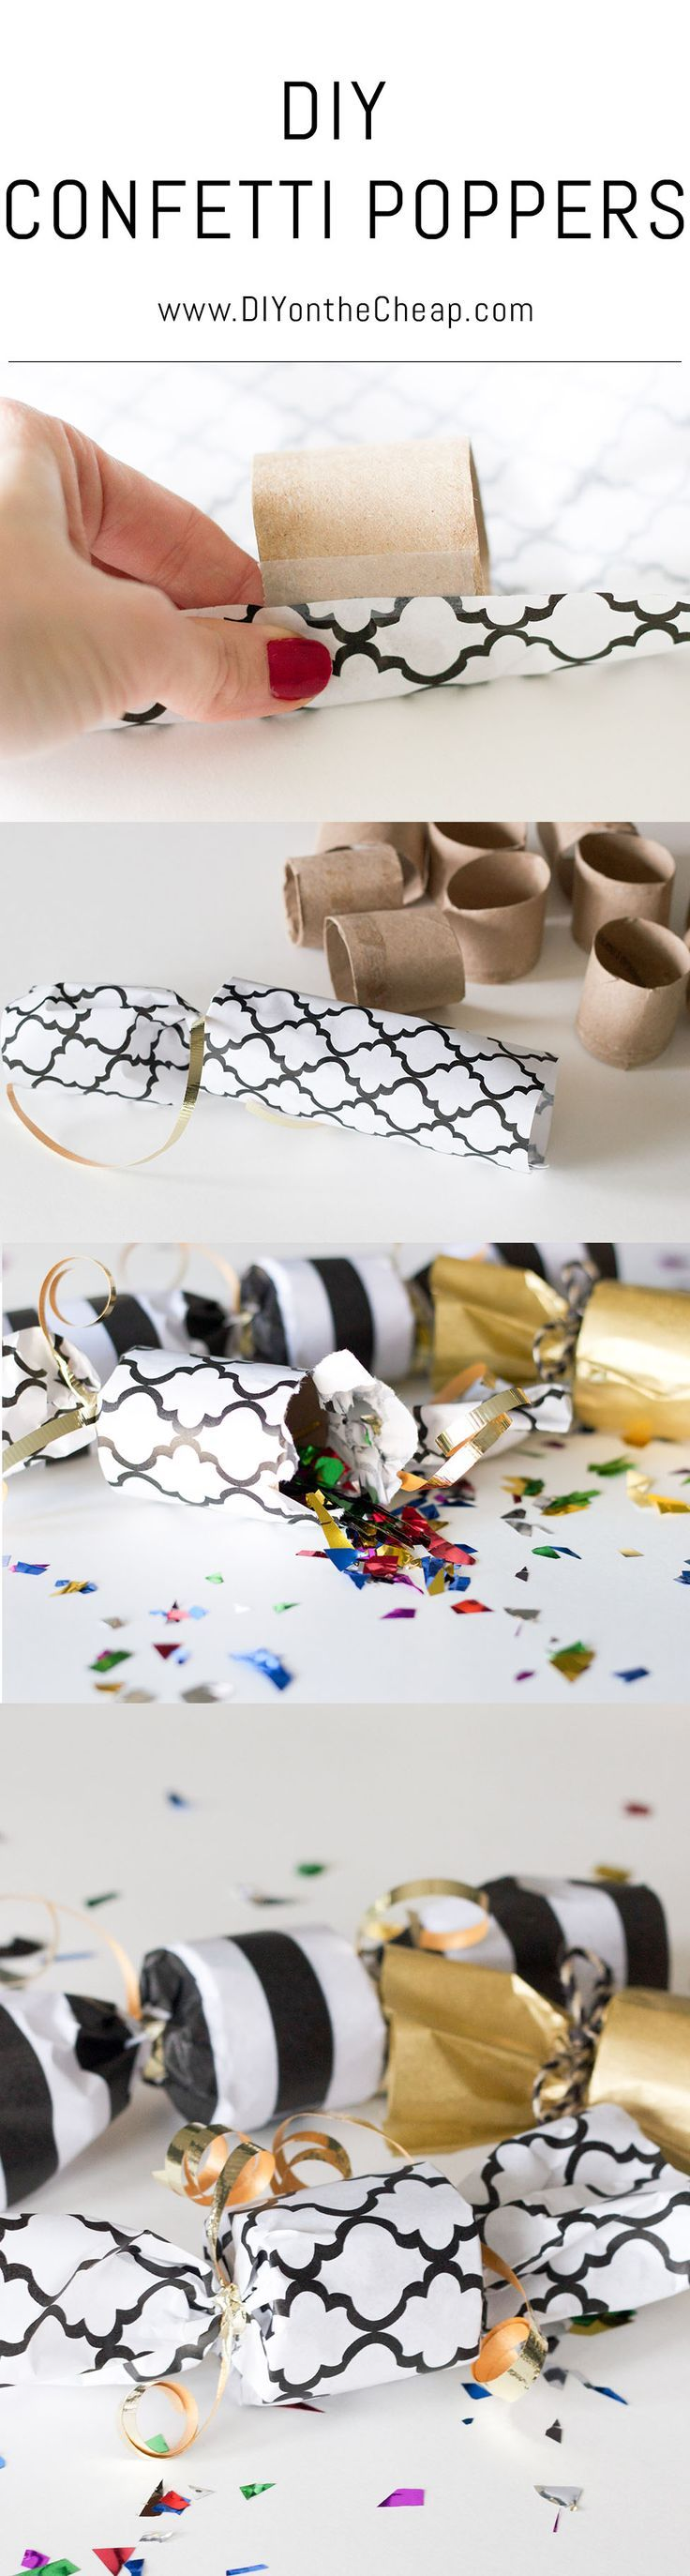 Make these easy, inexpensive DIY Confetti Poppers. Perfect for New Year's Eve!